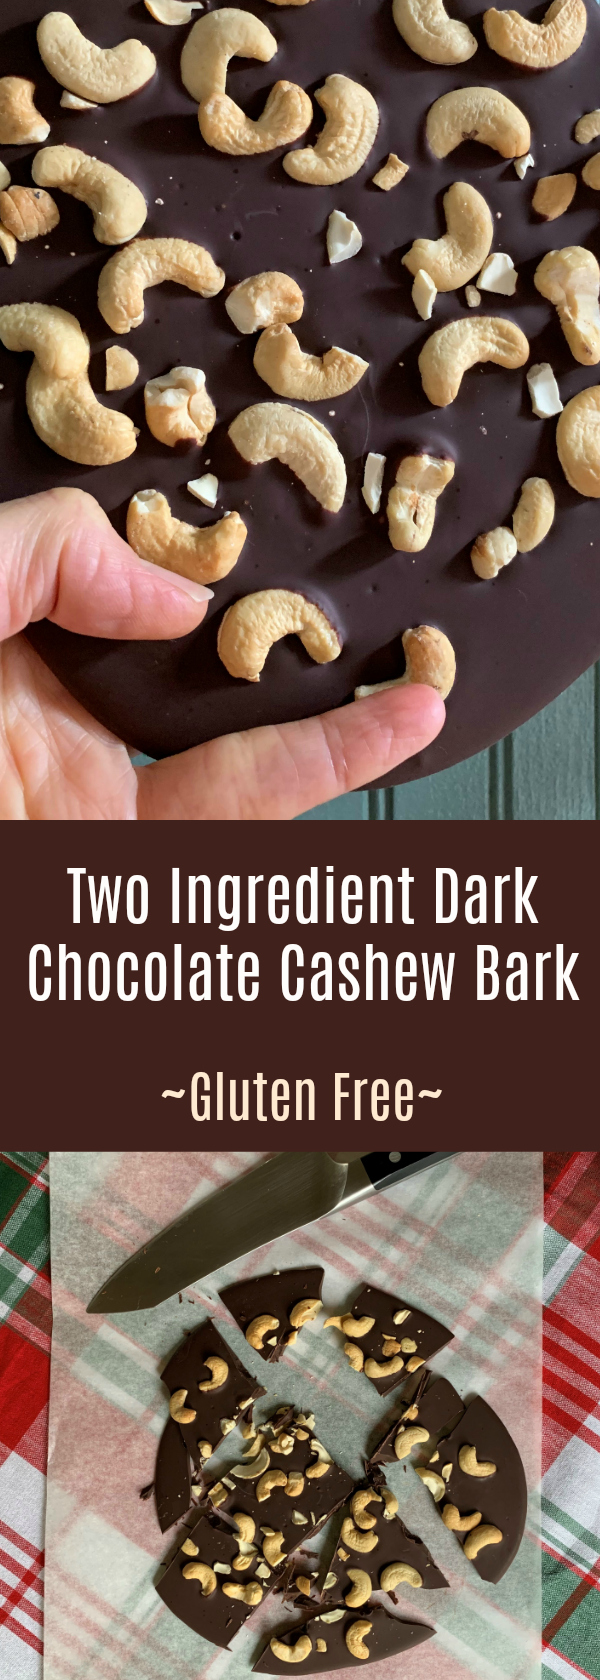 Two Ingredient Dark Chocolate Cashew Bark Gluten Free and Easy Gifts to Give